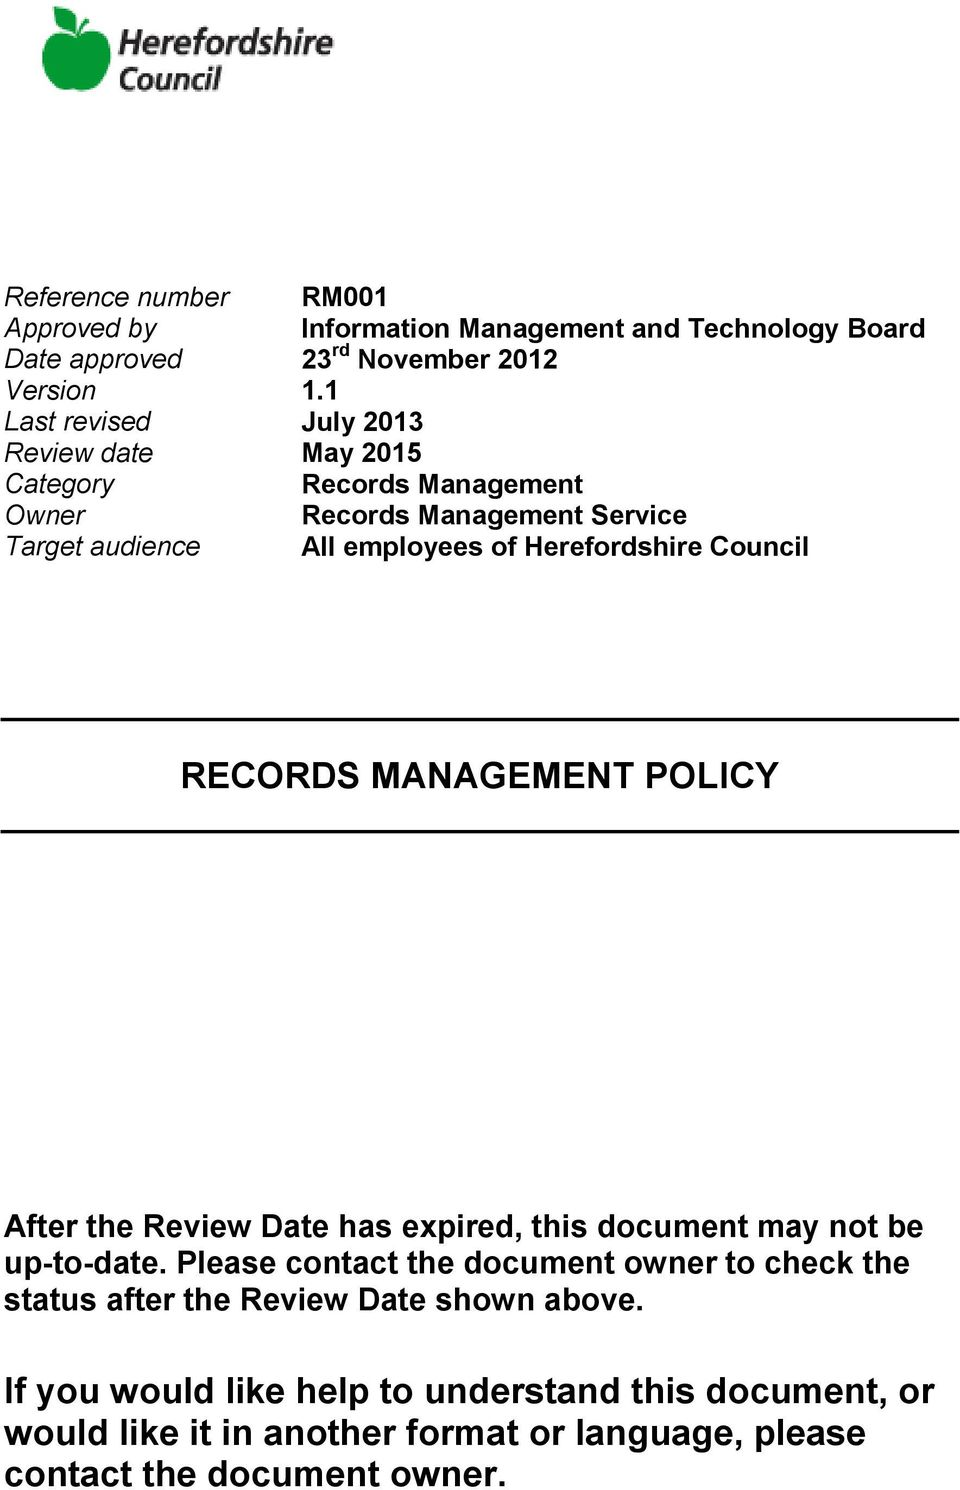 Herefordshire Council RECORDS MANAGEMENT POLICY After the Review Date has expired, this document may not be up-to-date.